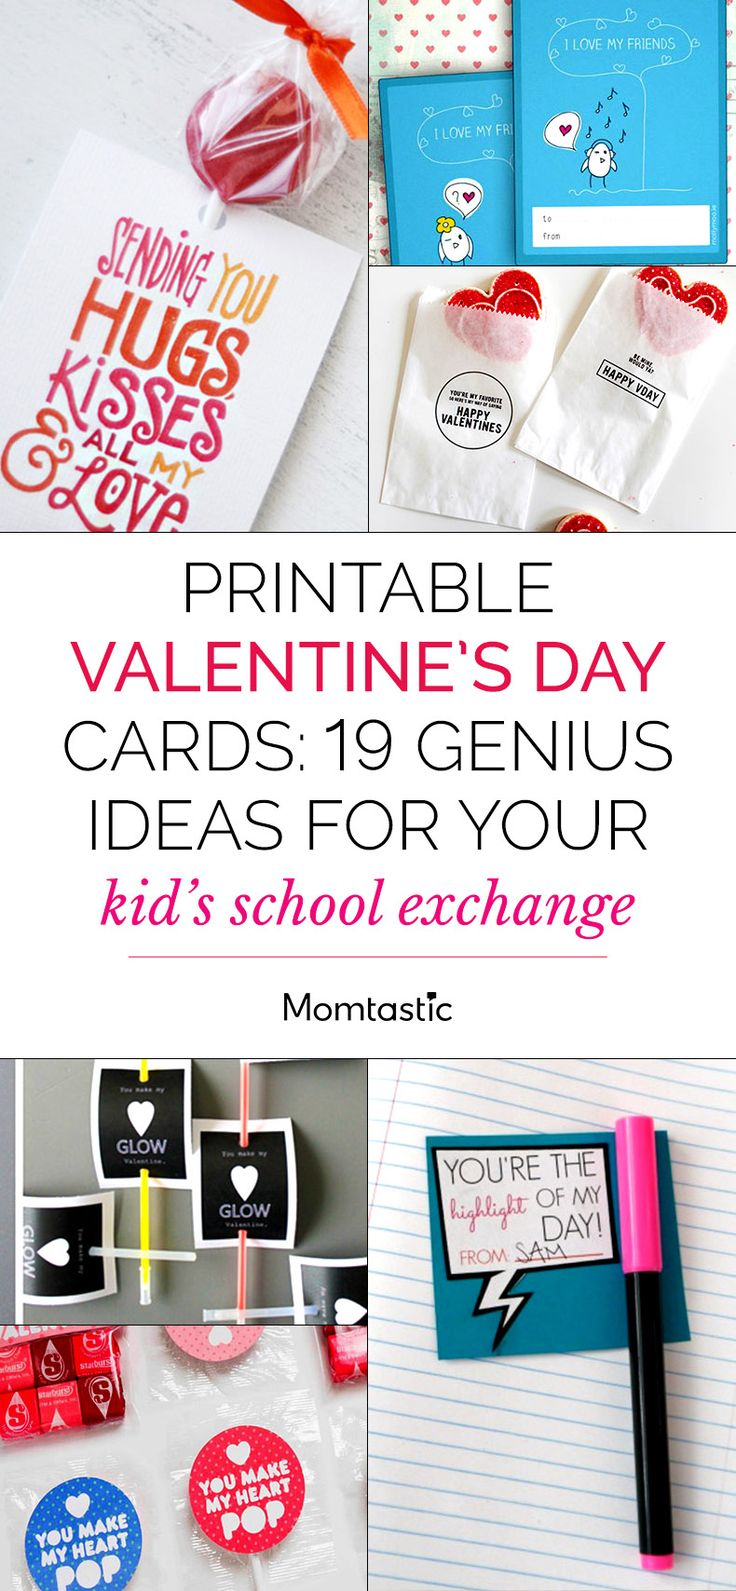 Printable Valentines Day Cards 19 Genius Ideas For Your Kids School Exchange